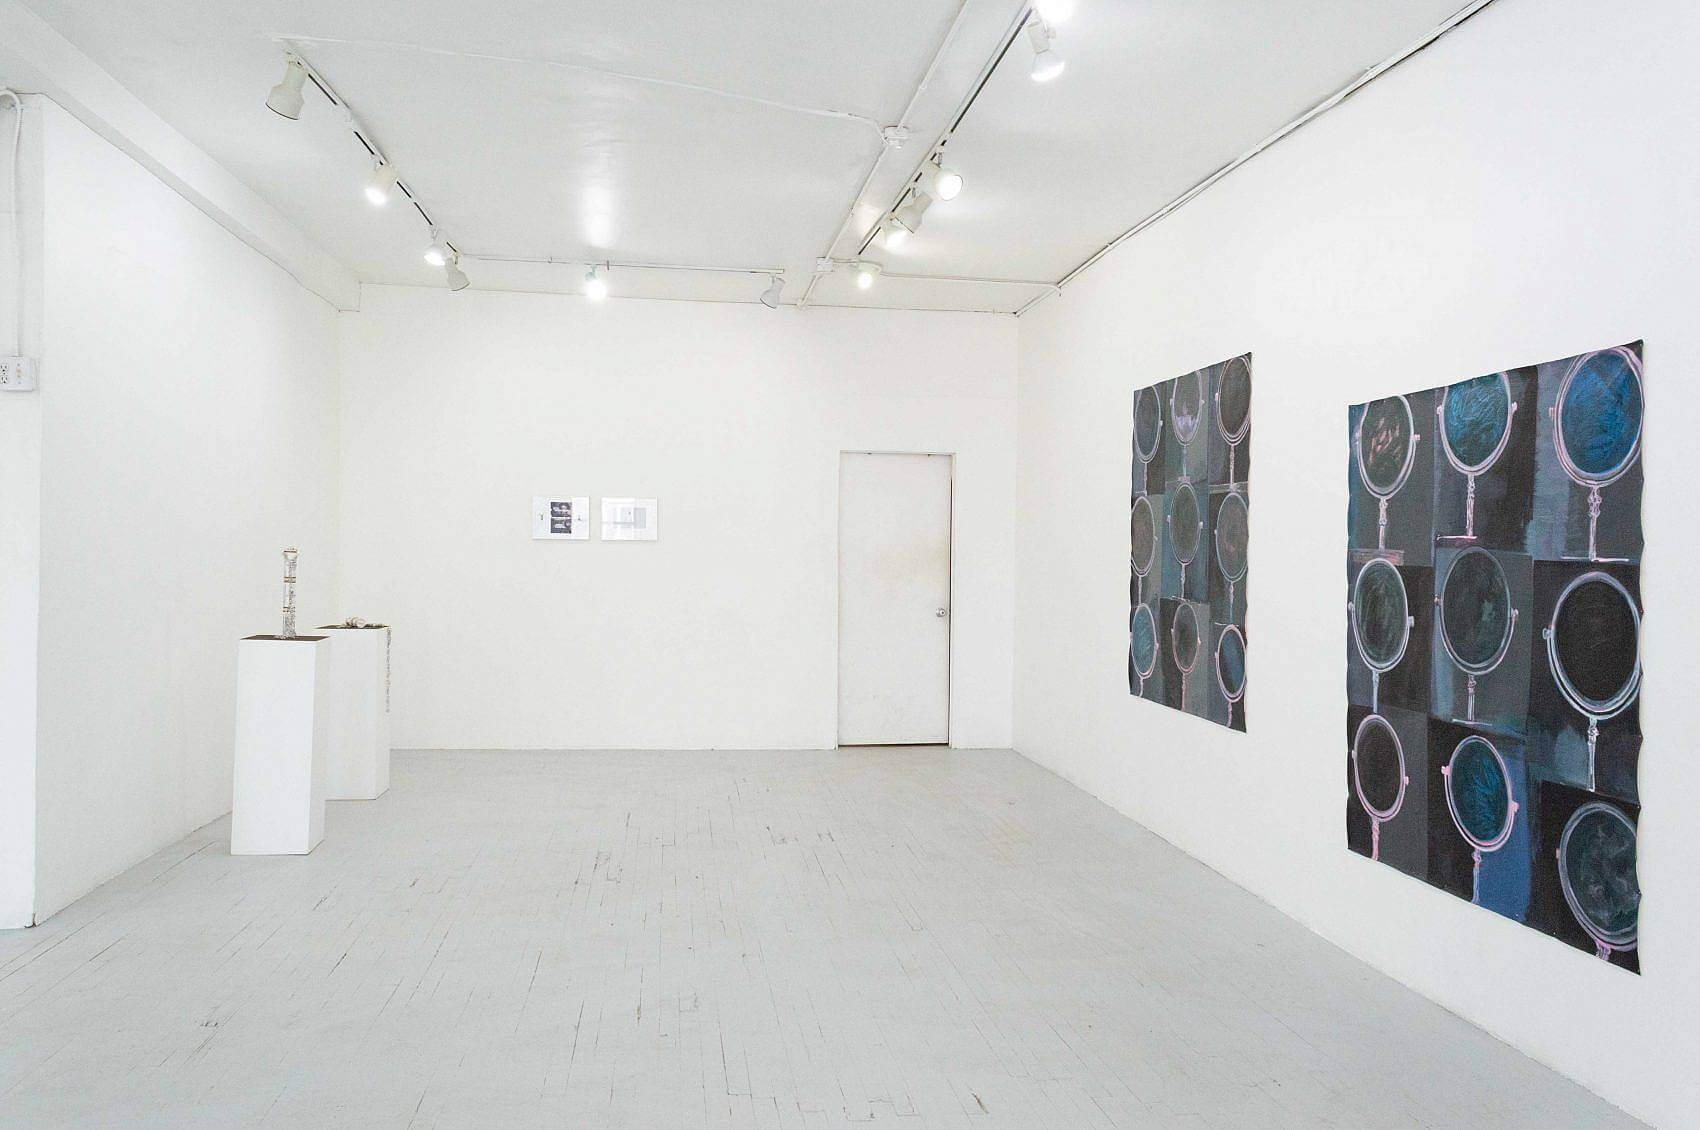 This is an installation shot of the exhibition. Against the left wall is Zack Ingram's